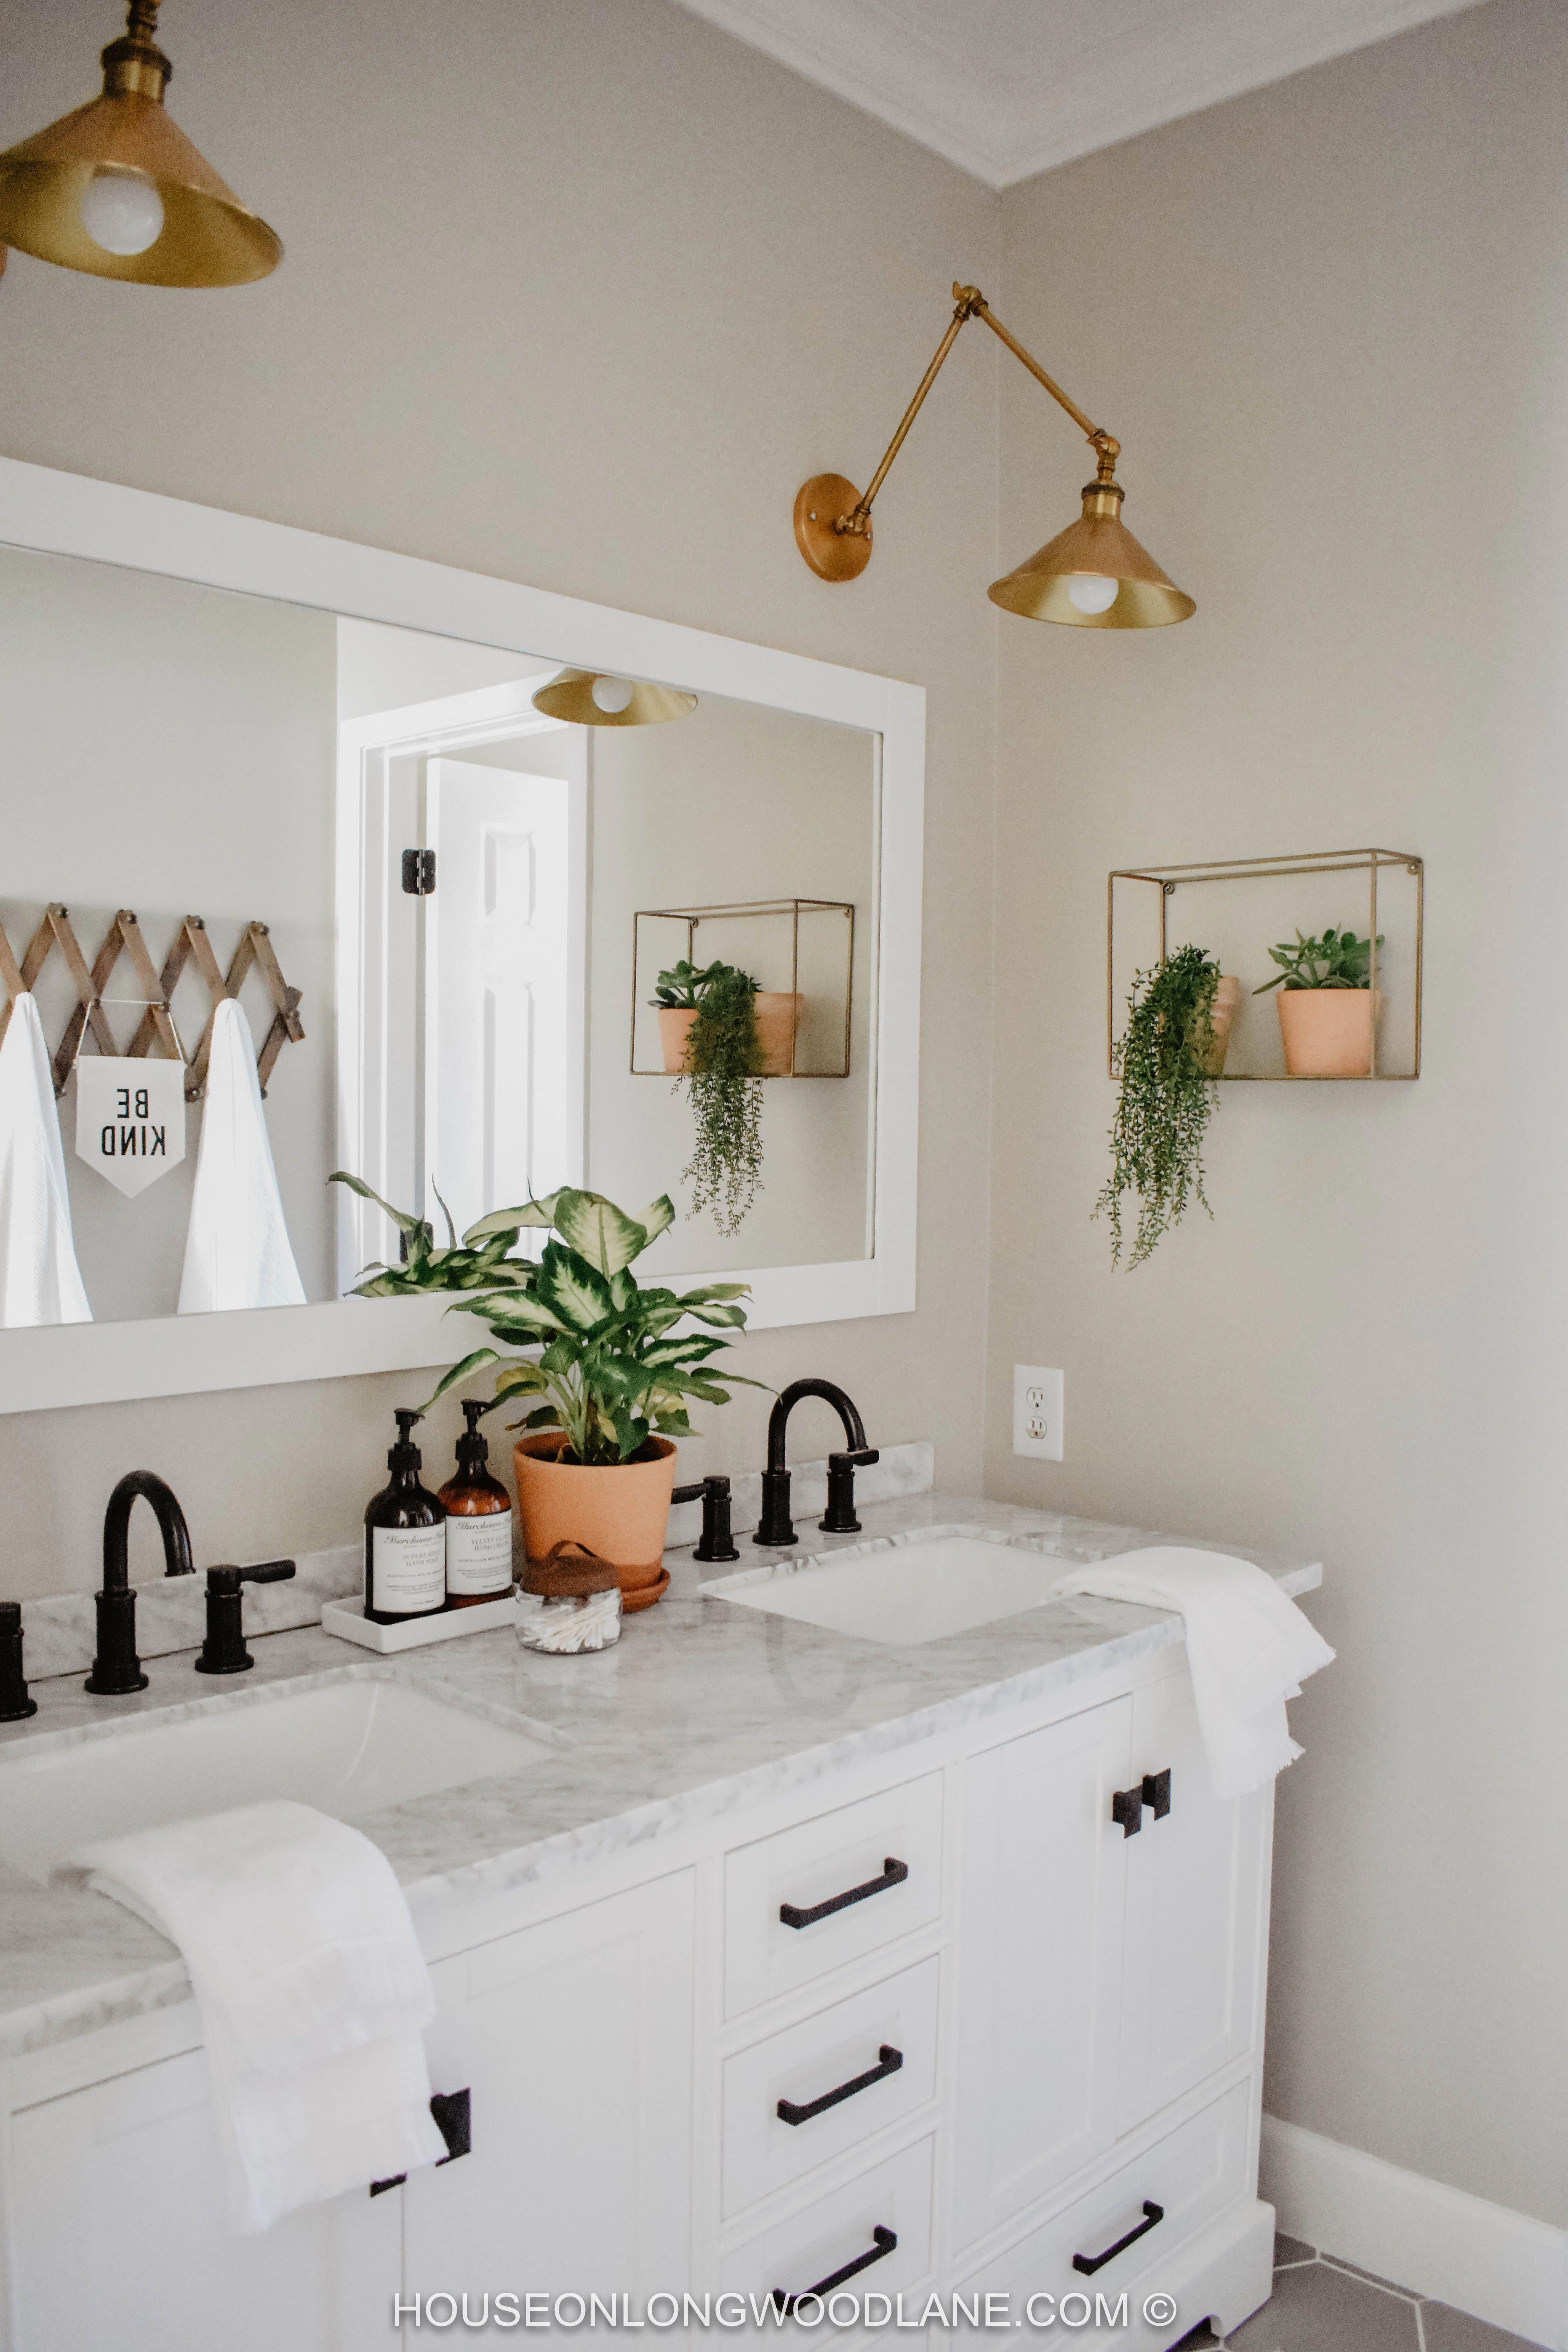 White And Neutral Bathroom With Copper Accents And A Charming Black Faucet Love The Plants And Small Detail Modern Boho Bathroom Home Remodeling Boho Bathroom